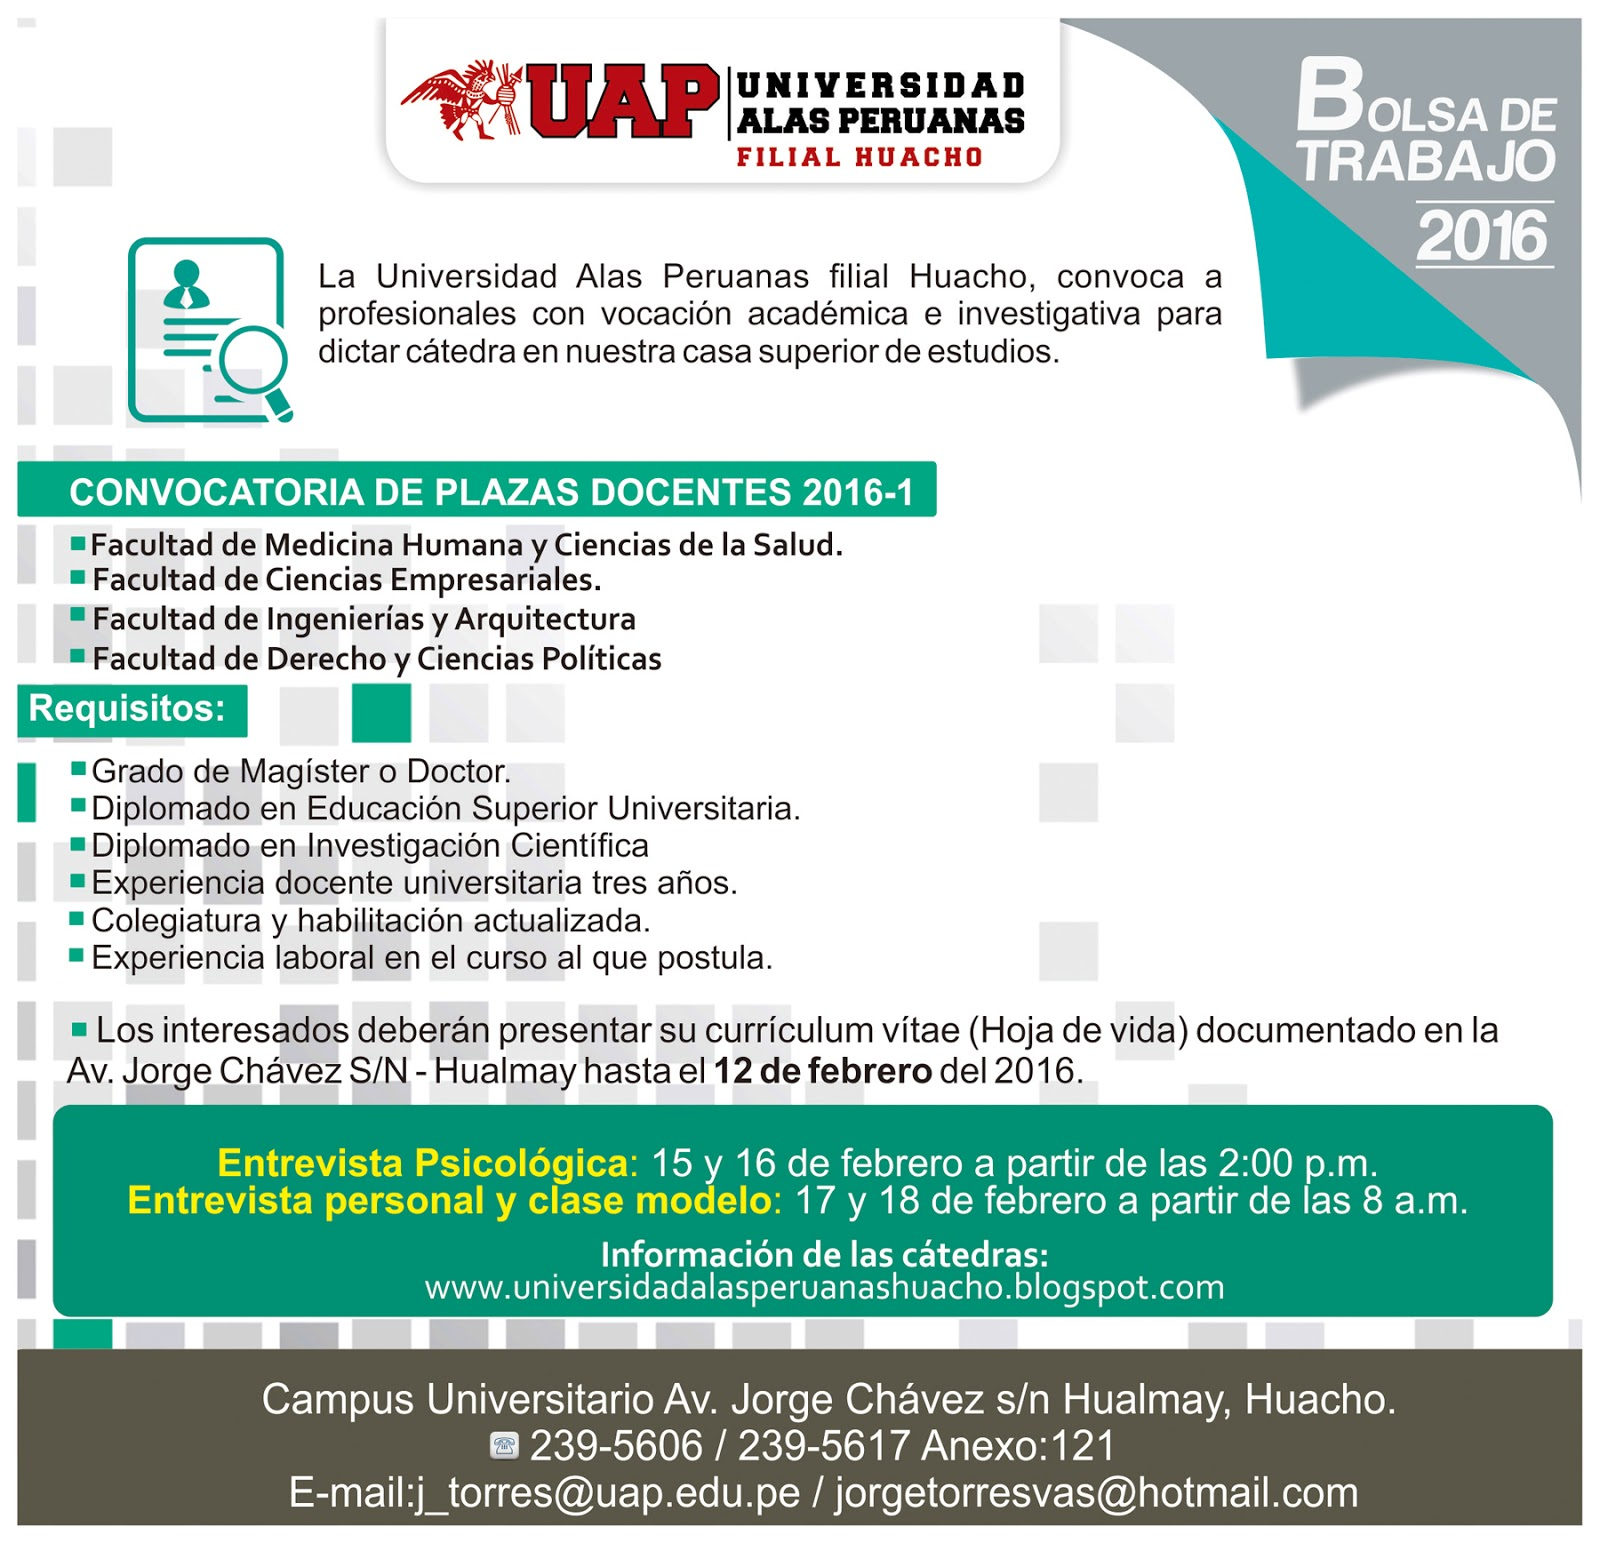 Universidad alas peruanas filial huacho convocatoria de for Convocatoria plazas docentes 2016